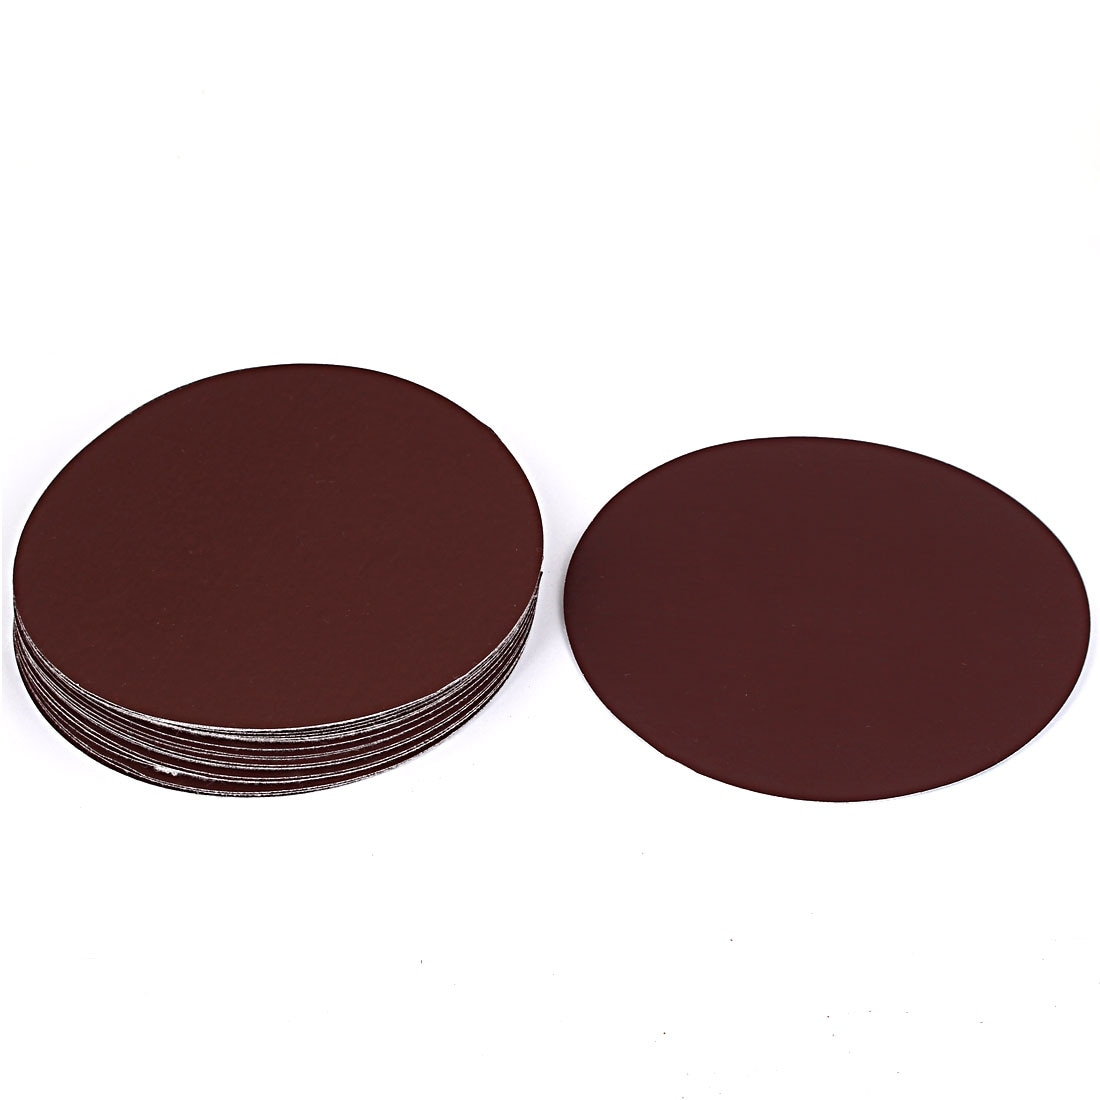 Shop Circuit Board Grinding 1500 Grit Stick Sanding Disc 15cm Dia Circuitboardtablejpg 20pcs On Sale Free Shipping Orders Over 45 18321843